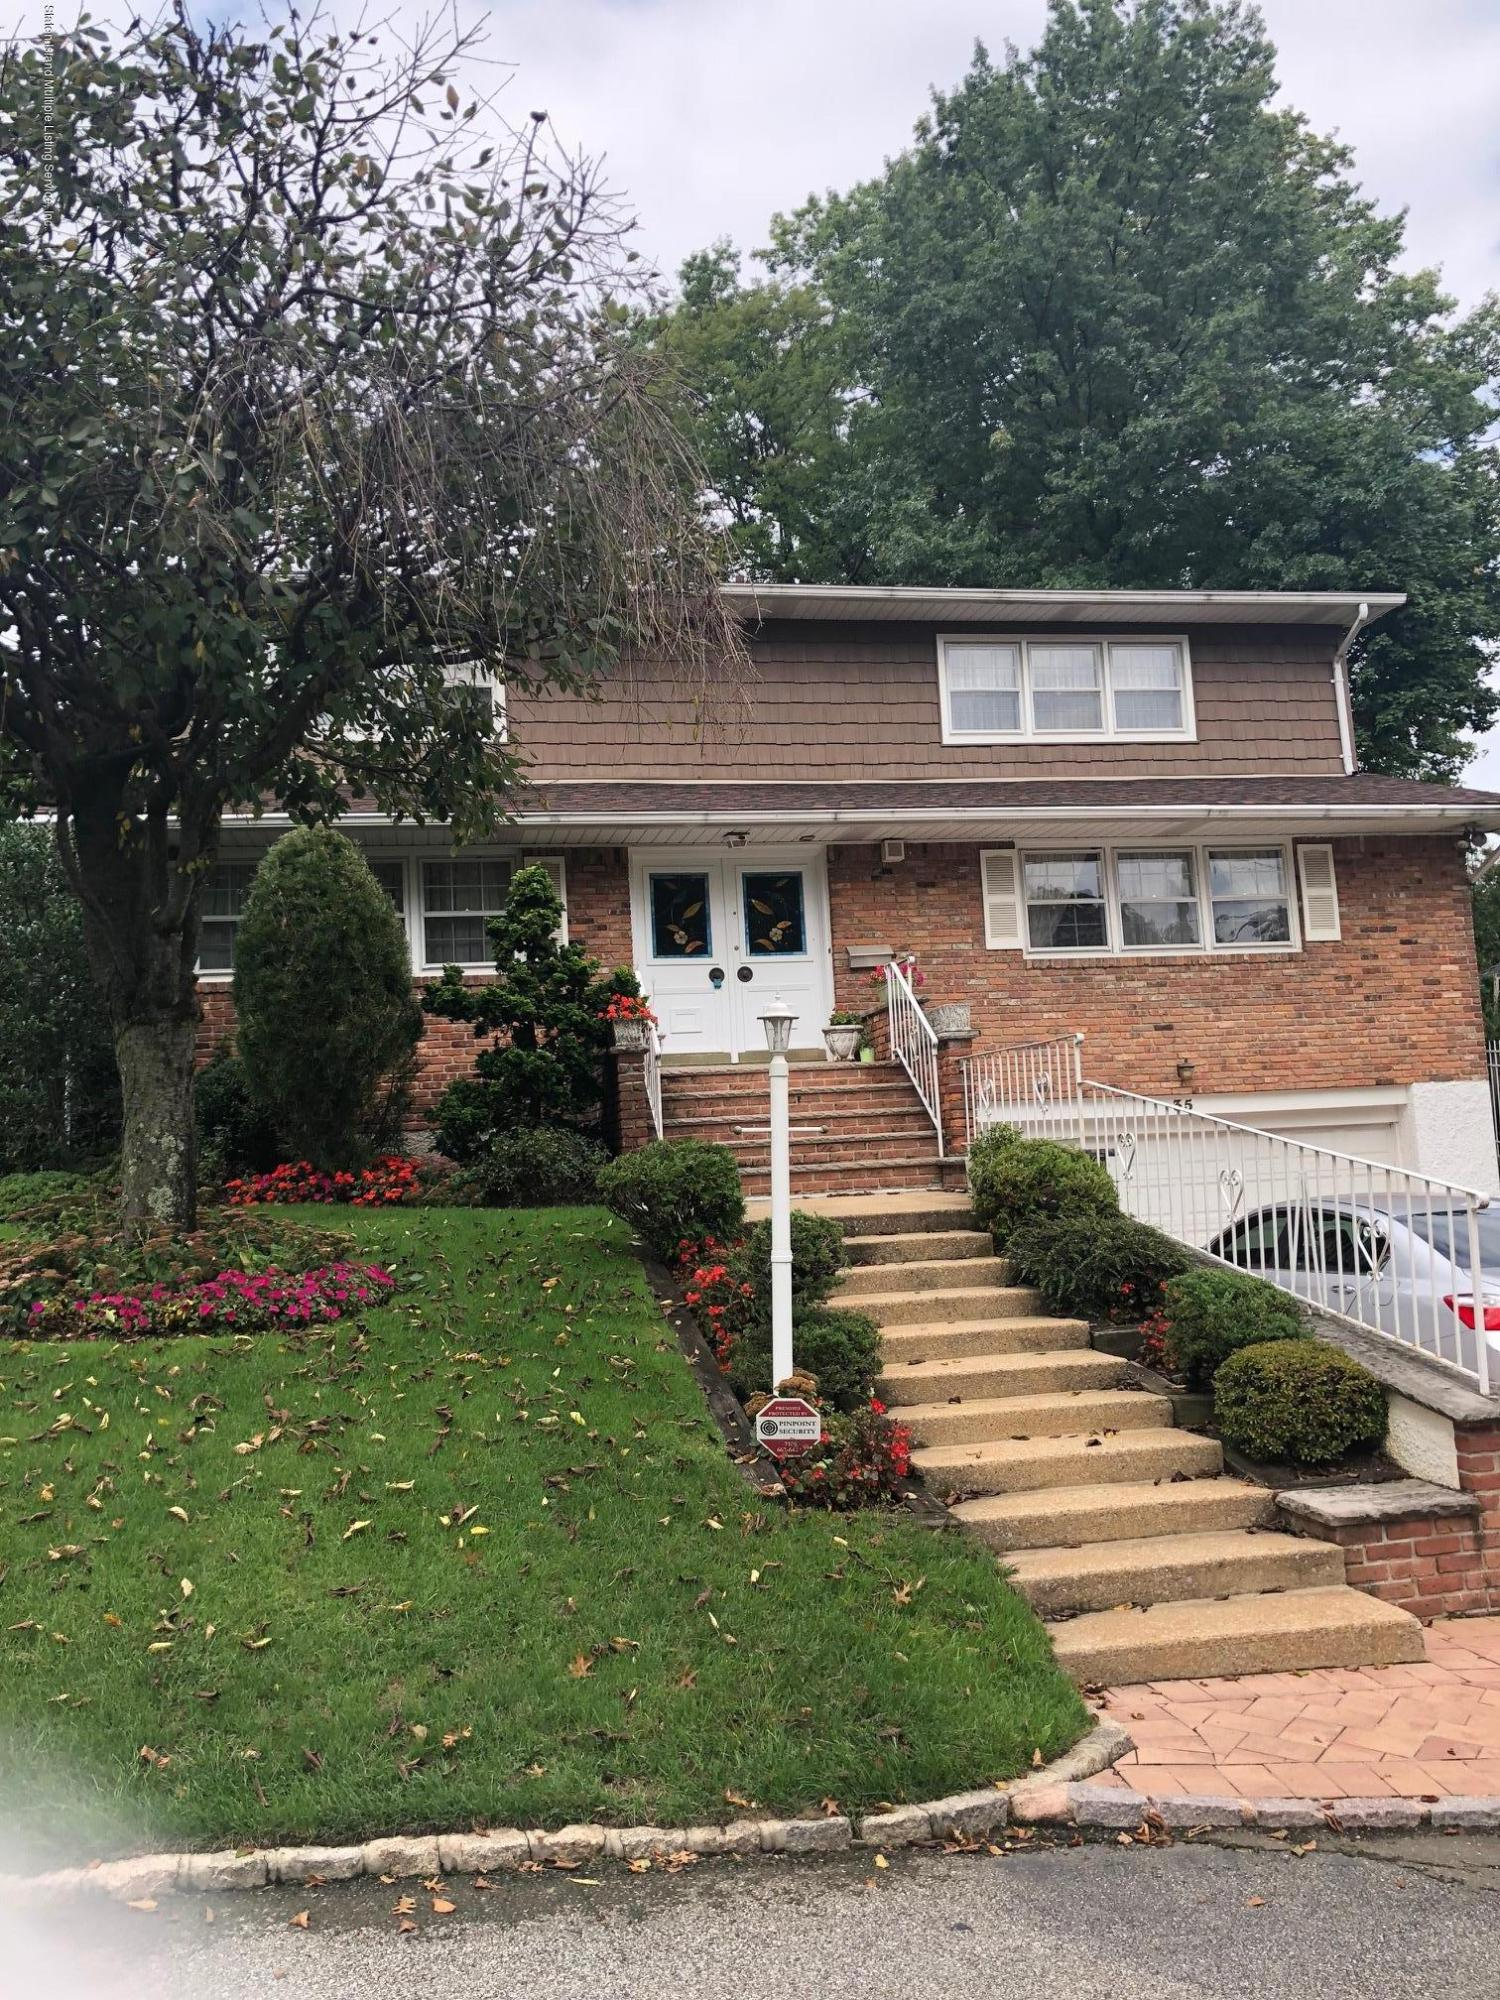 Single Family - Detached 35 East Entry Road  Staten Island, NY 10304, MLS-1123325-7